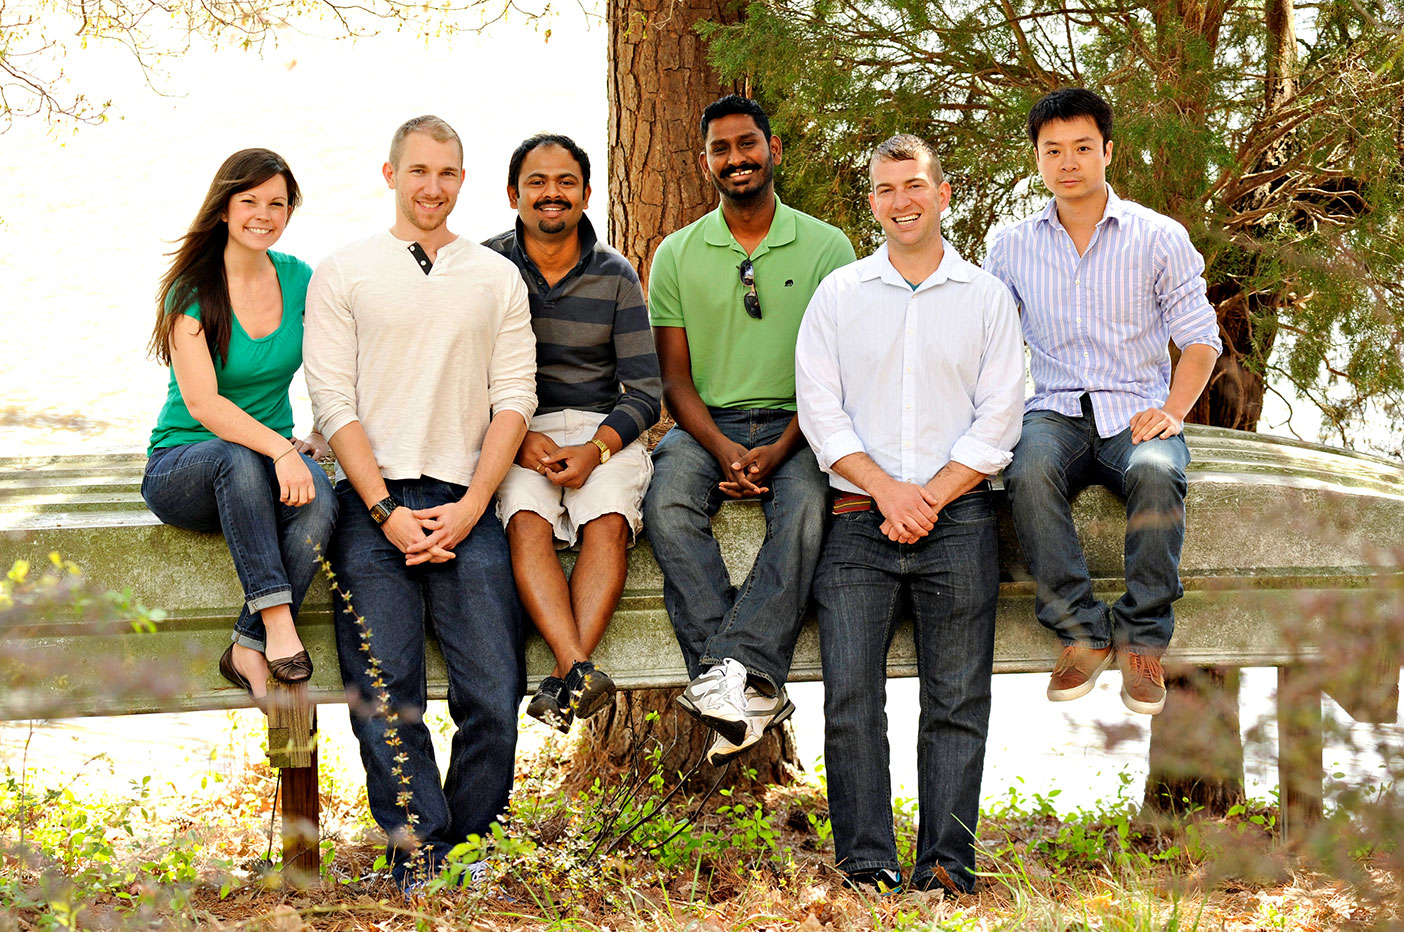 (Left to right) Amanda, Andrew, Senthil, Raja, Justin, and Pengyi